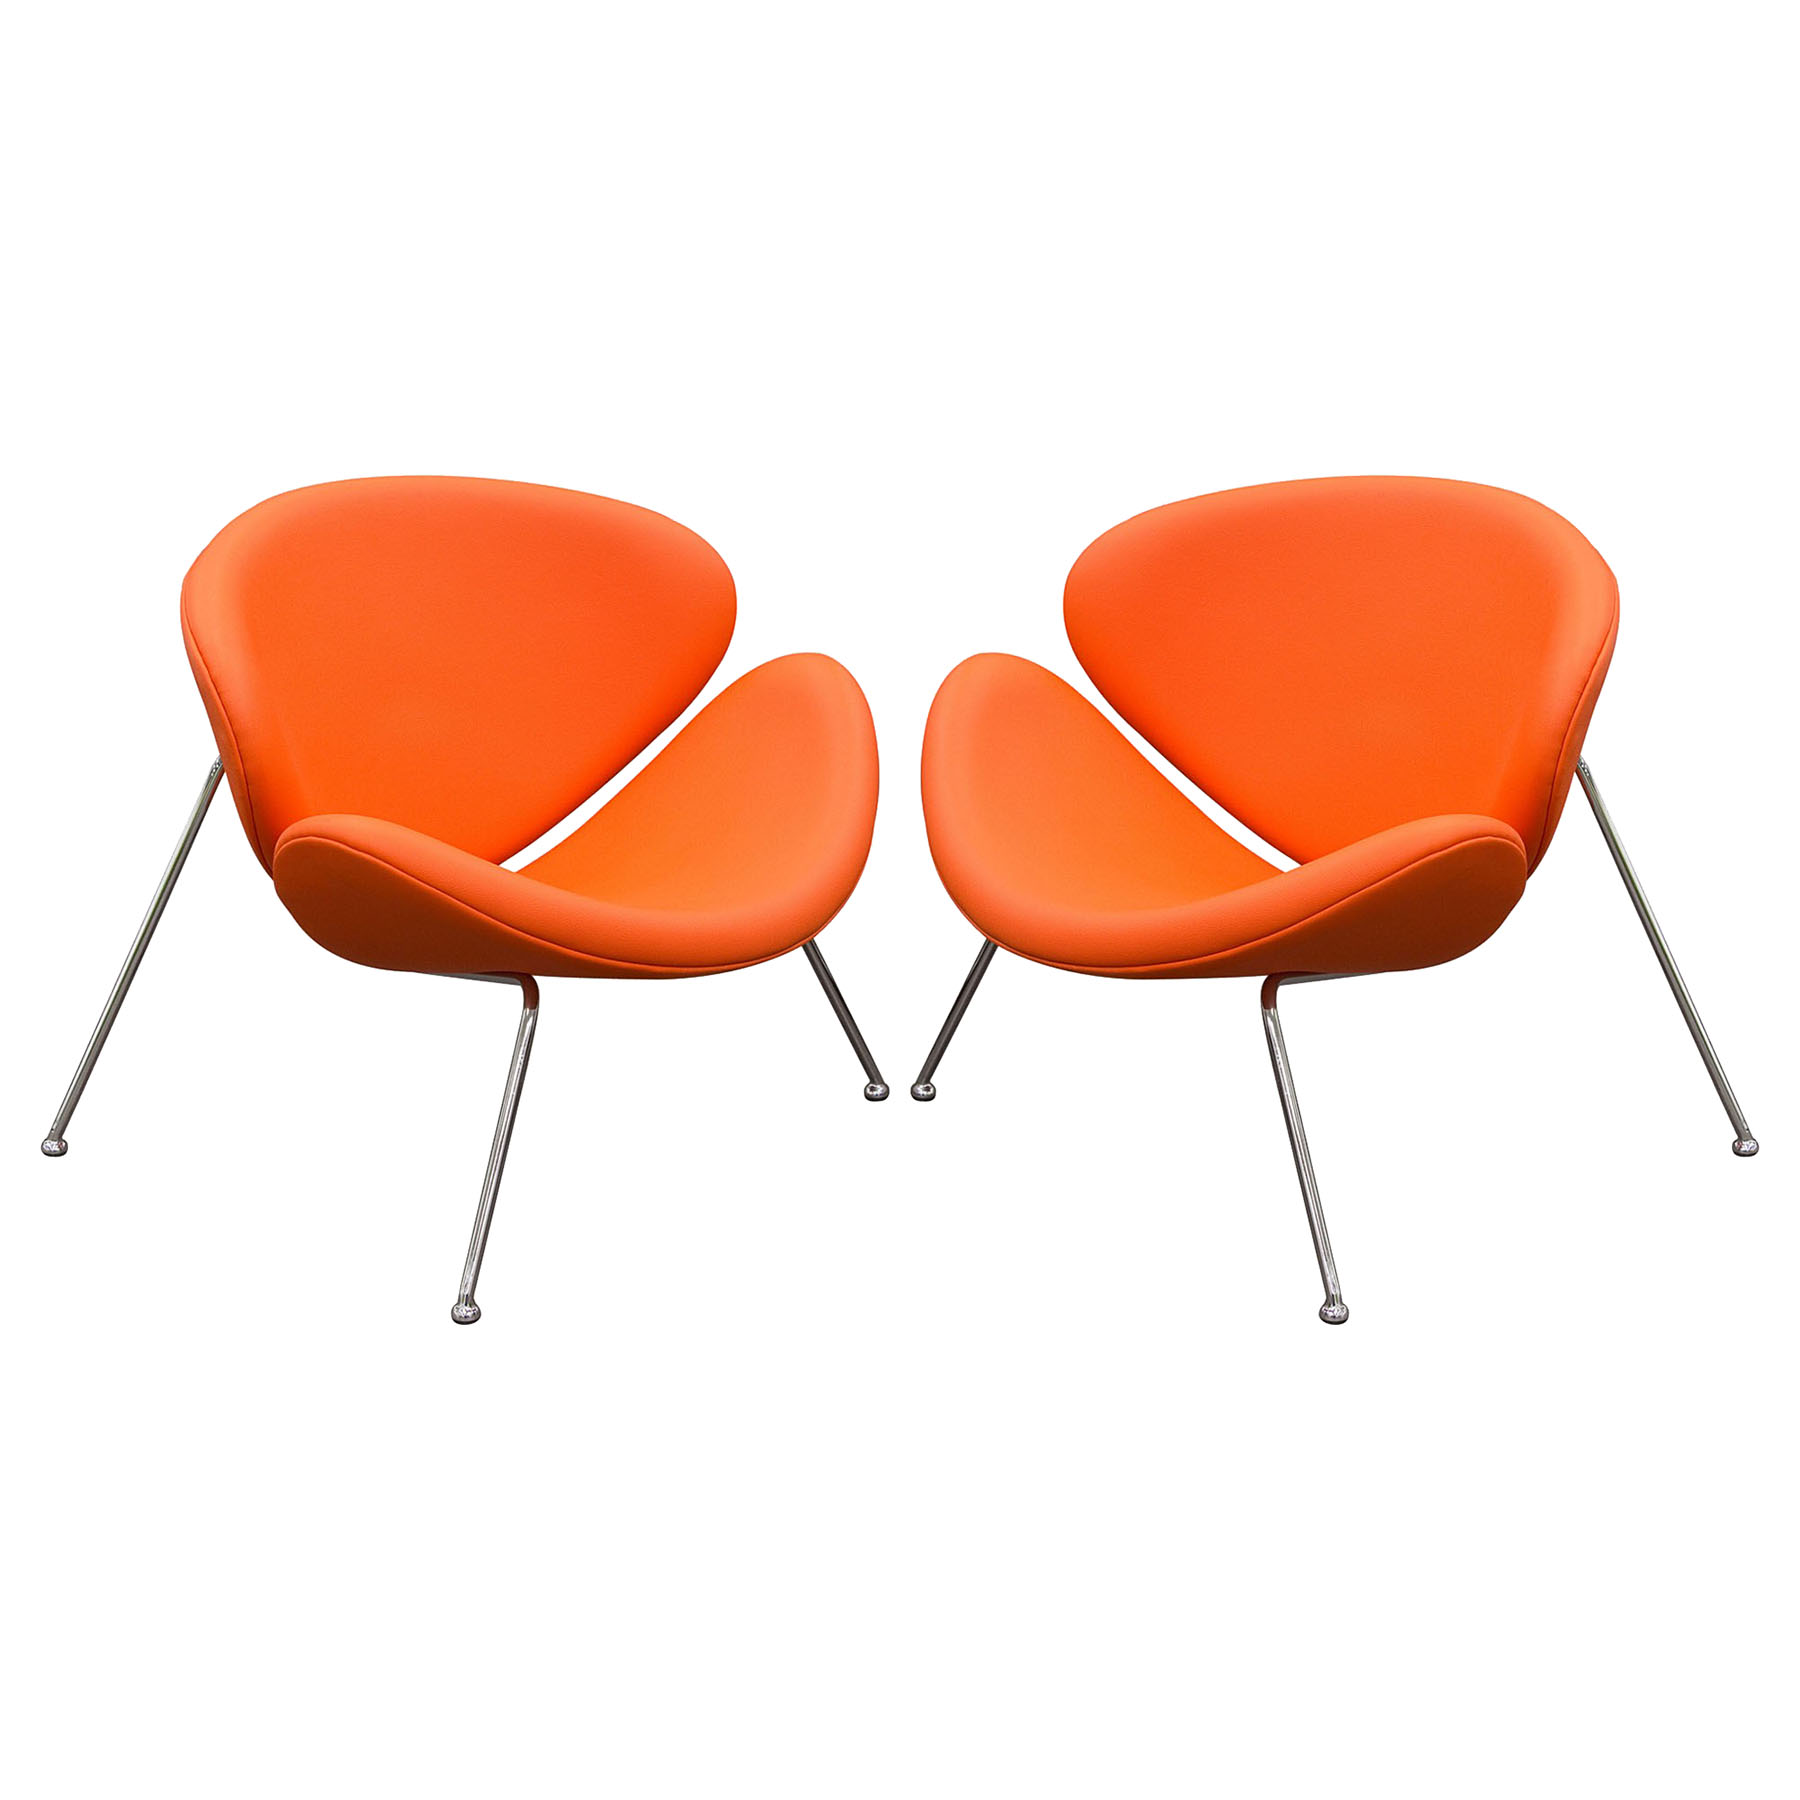 Roxy Accent Chair - Chrome, Orange (Set of 2)